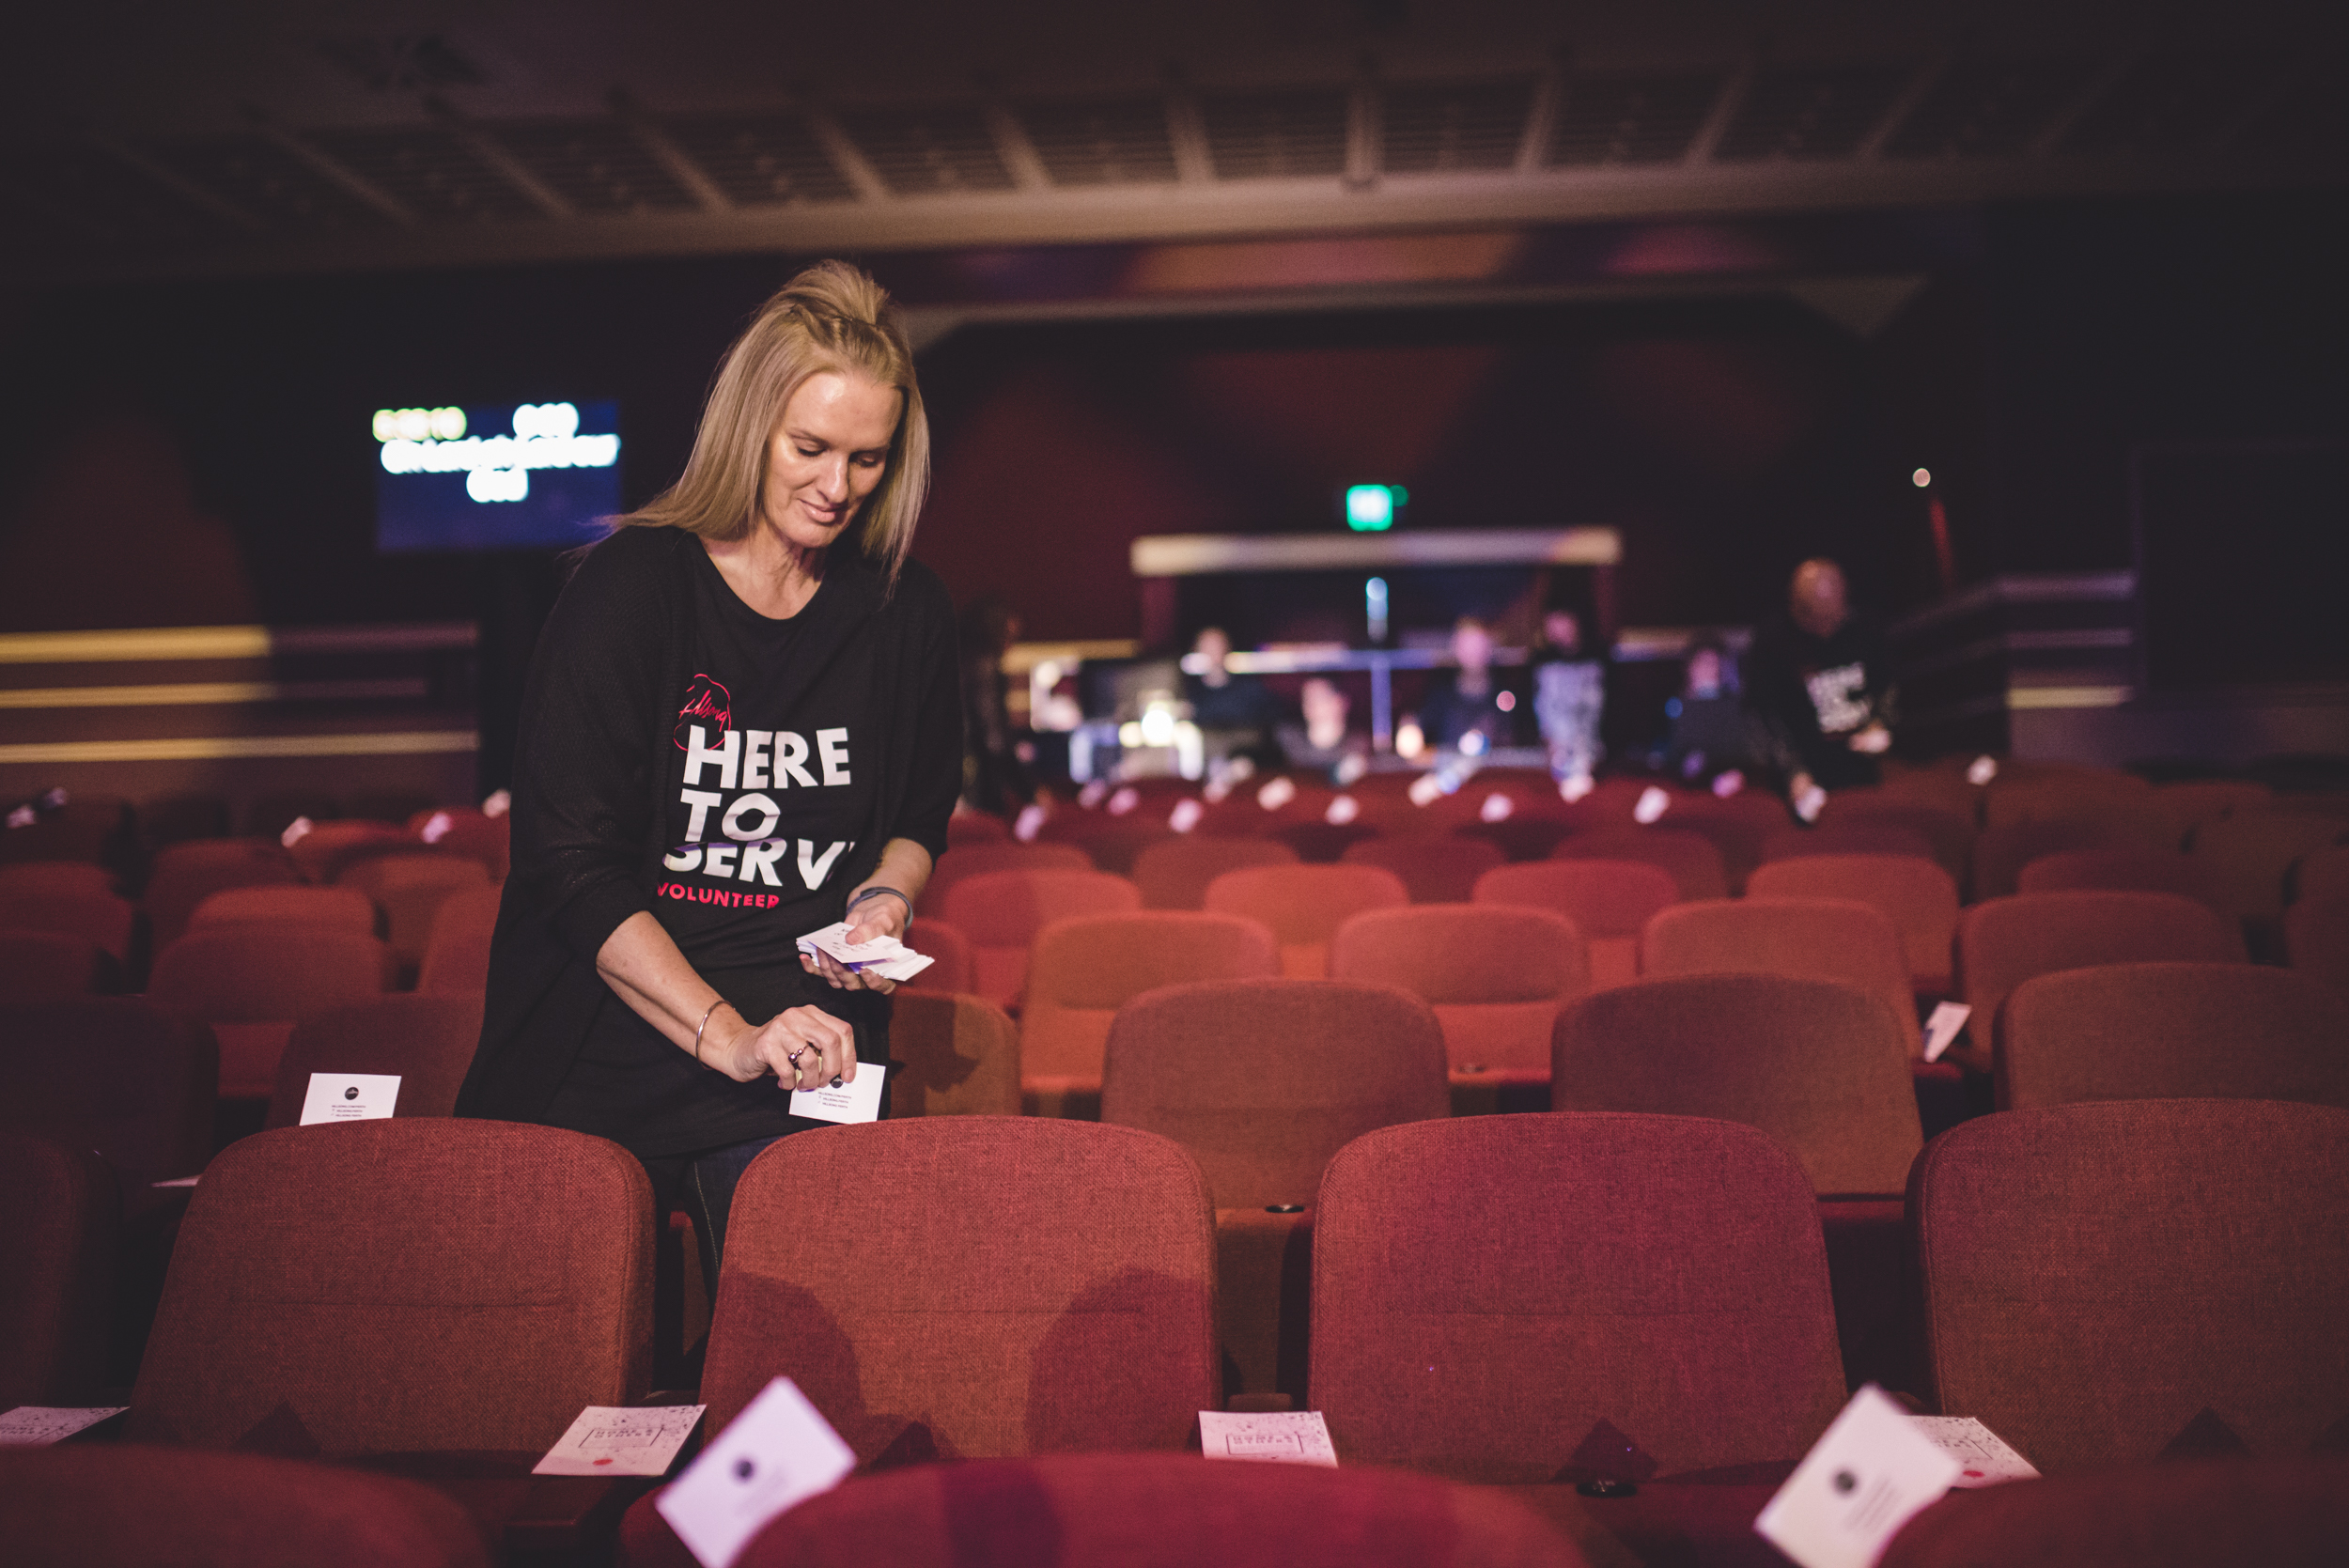 volunteers serving at Hillsong Perth